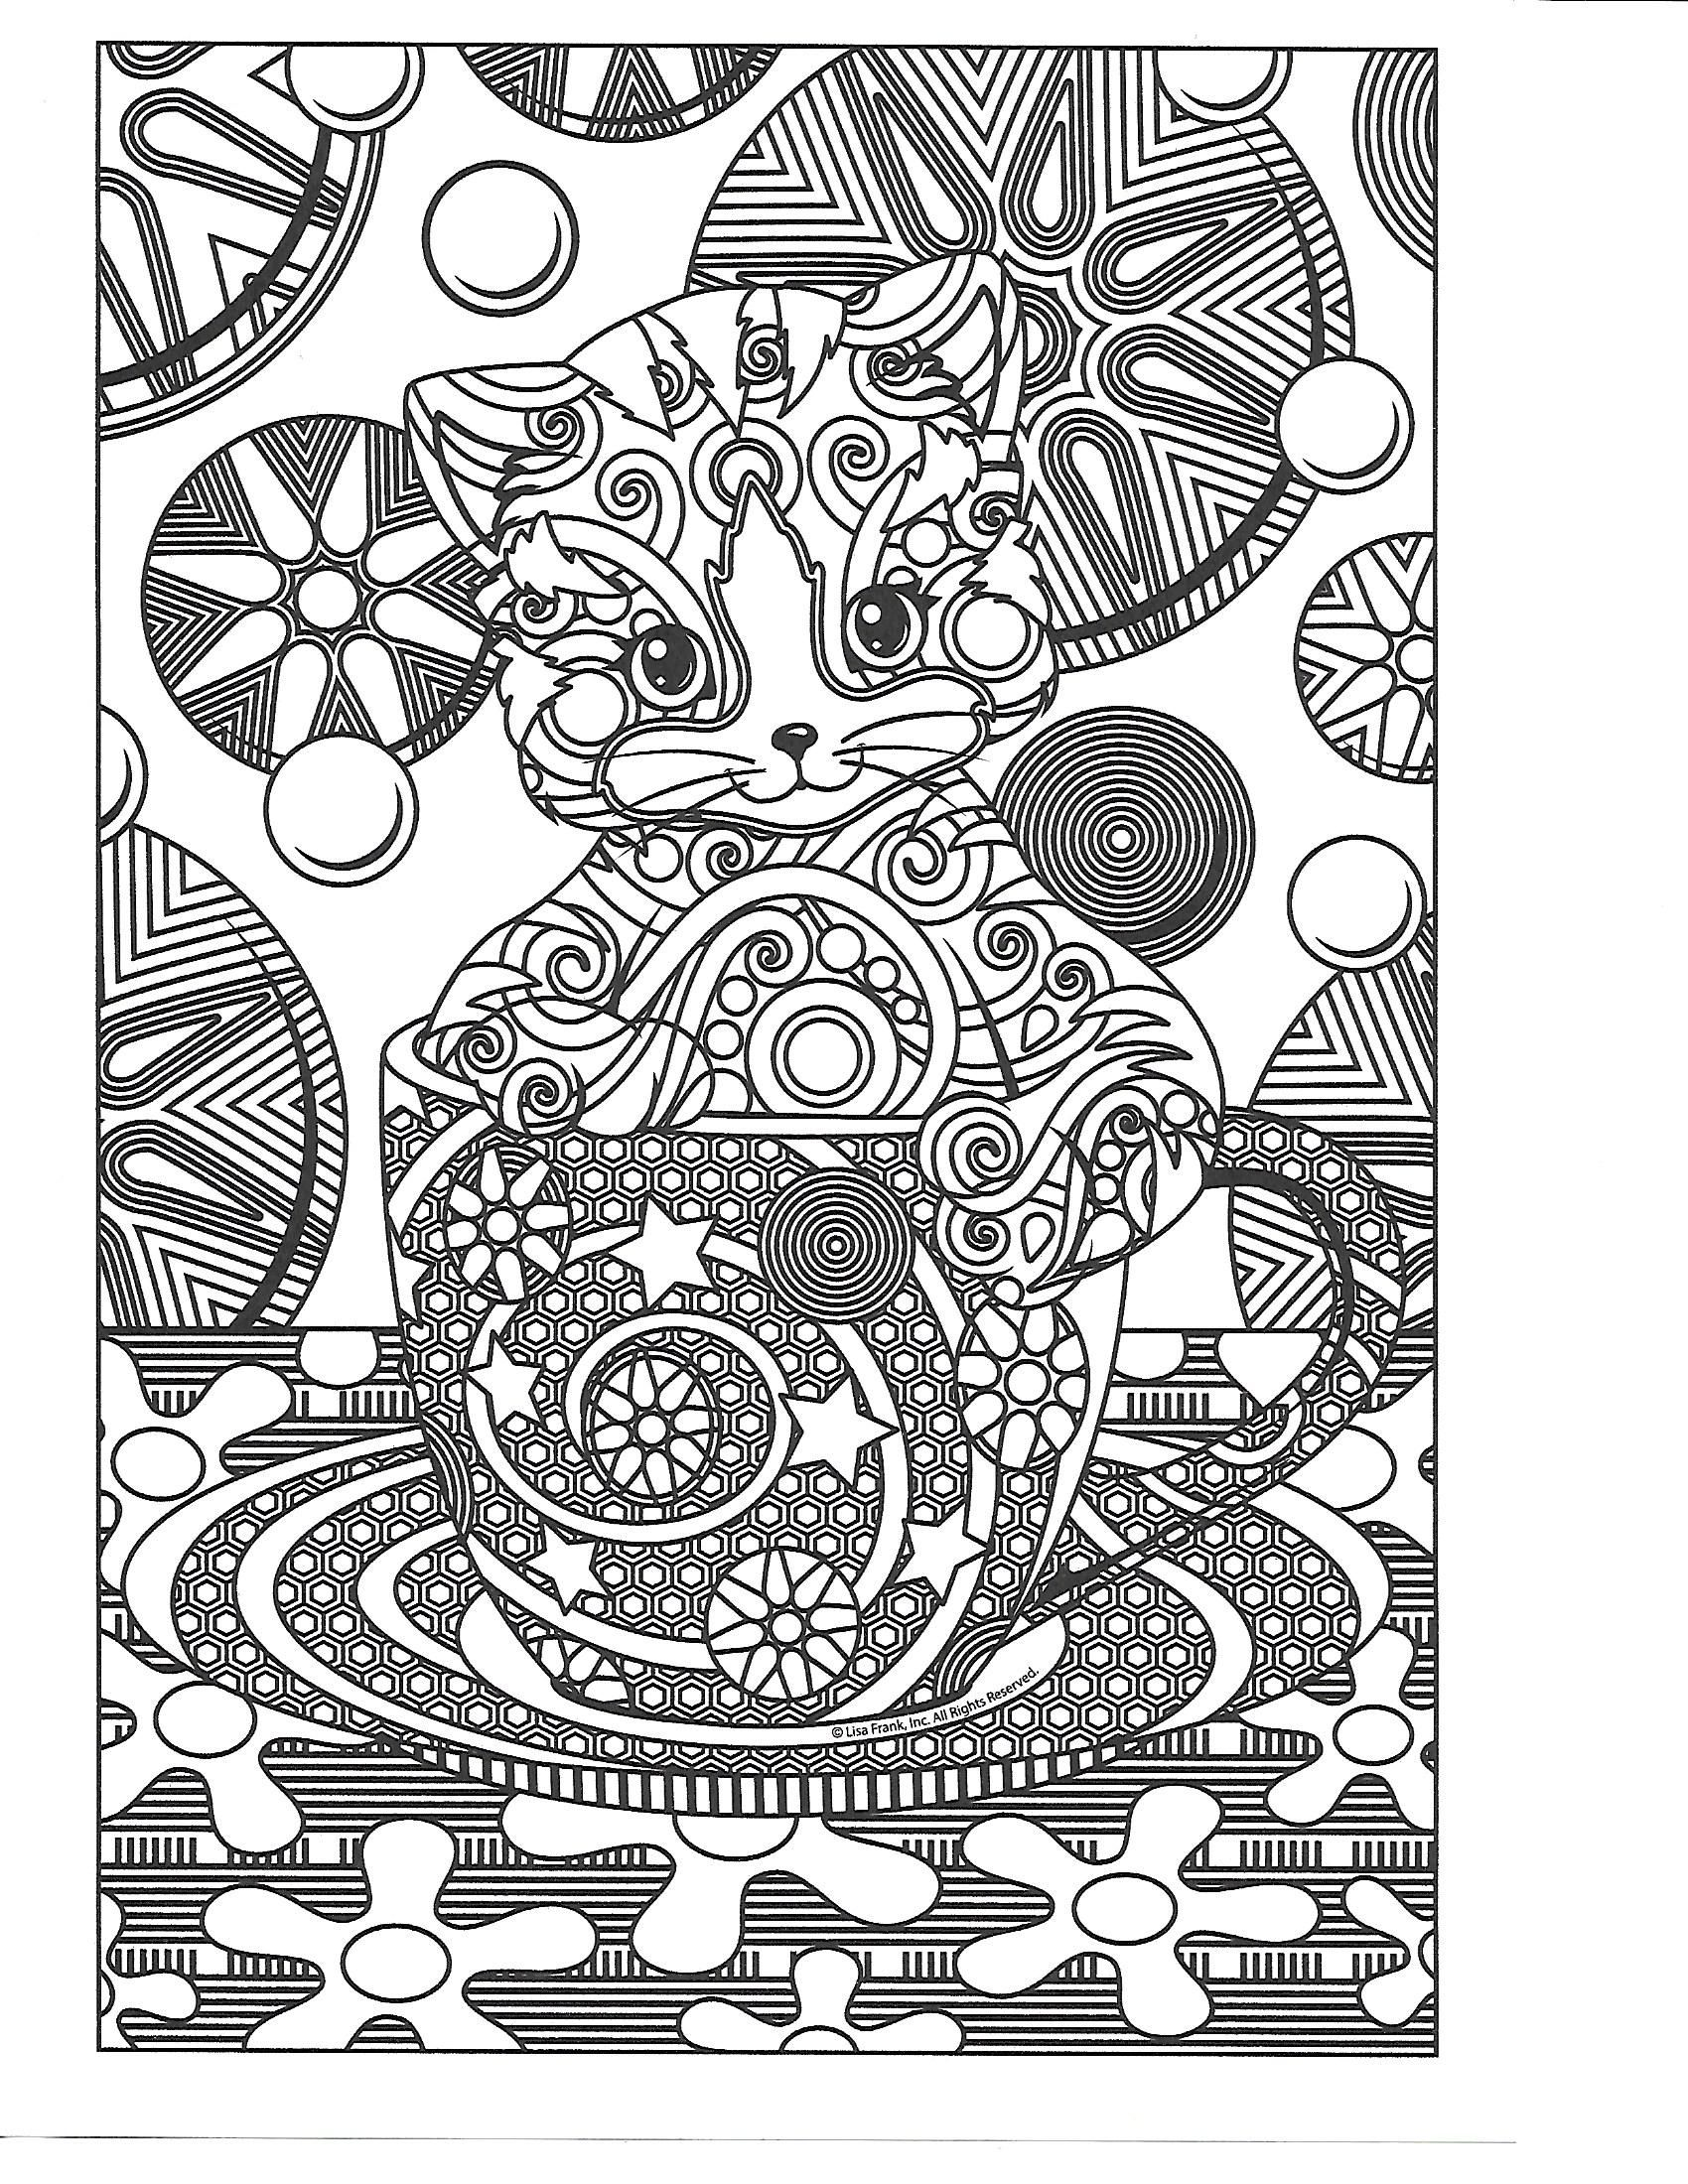 Pin By Beth Conroy On Color Cats Cat Coloring Page Colouring Pages Coloring Pages [ 2200 x 1700 Pixel ]